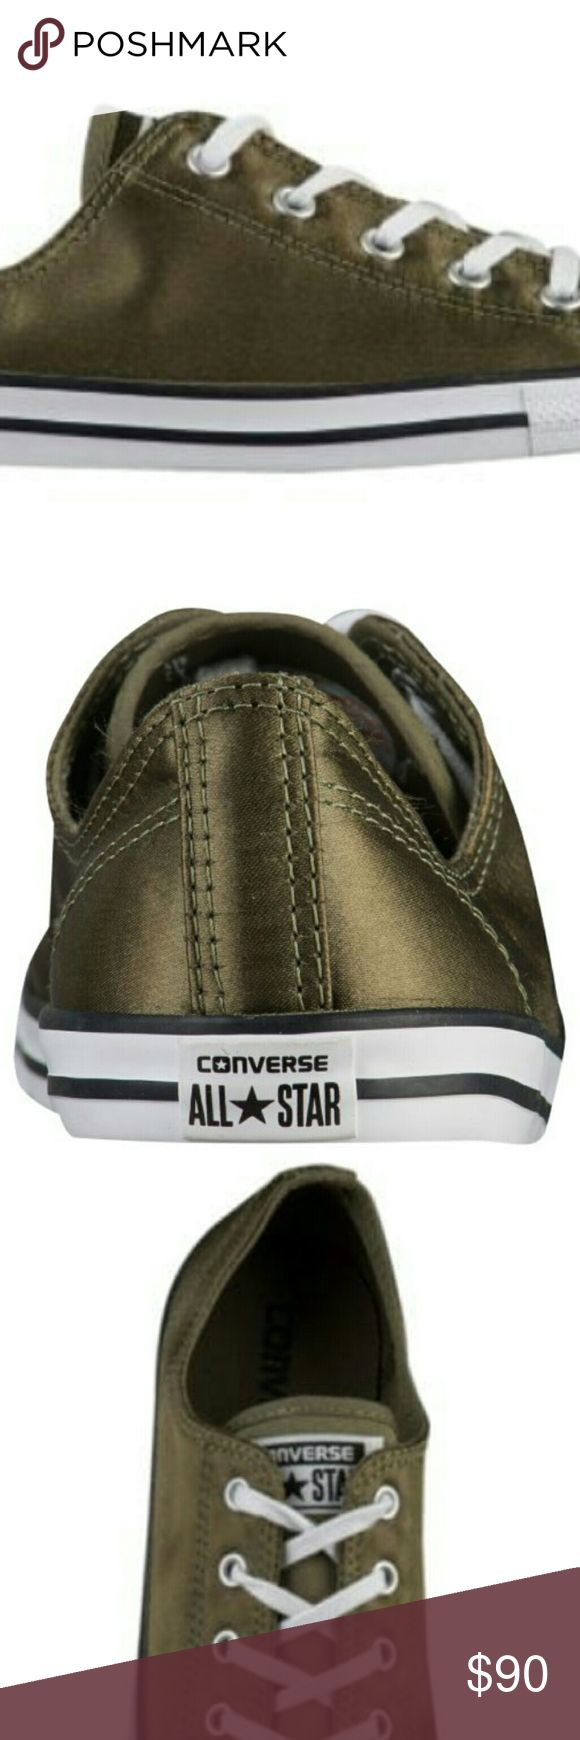 Green converse for men women and kids Green converse for men women and kids any size and colors Converse Shoes